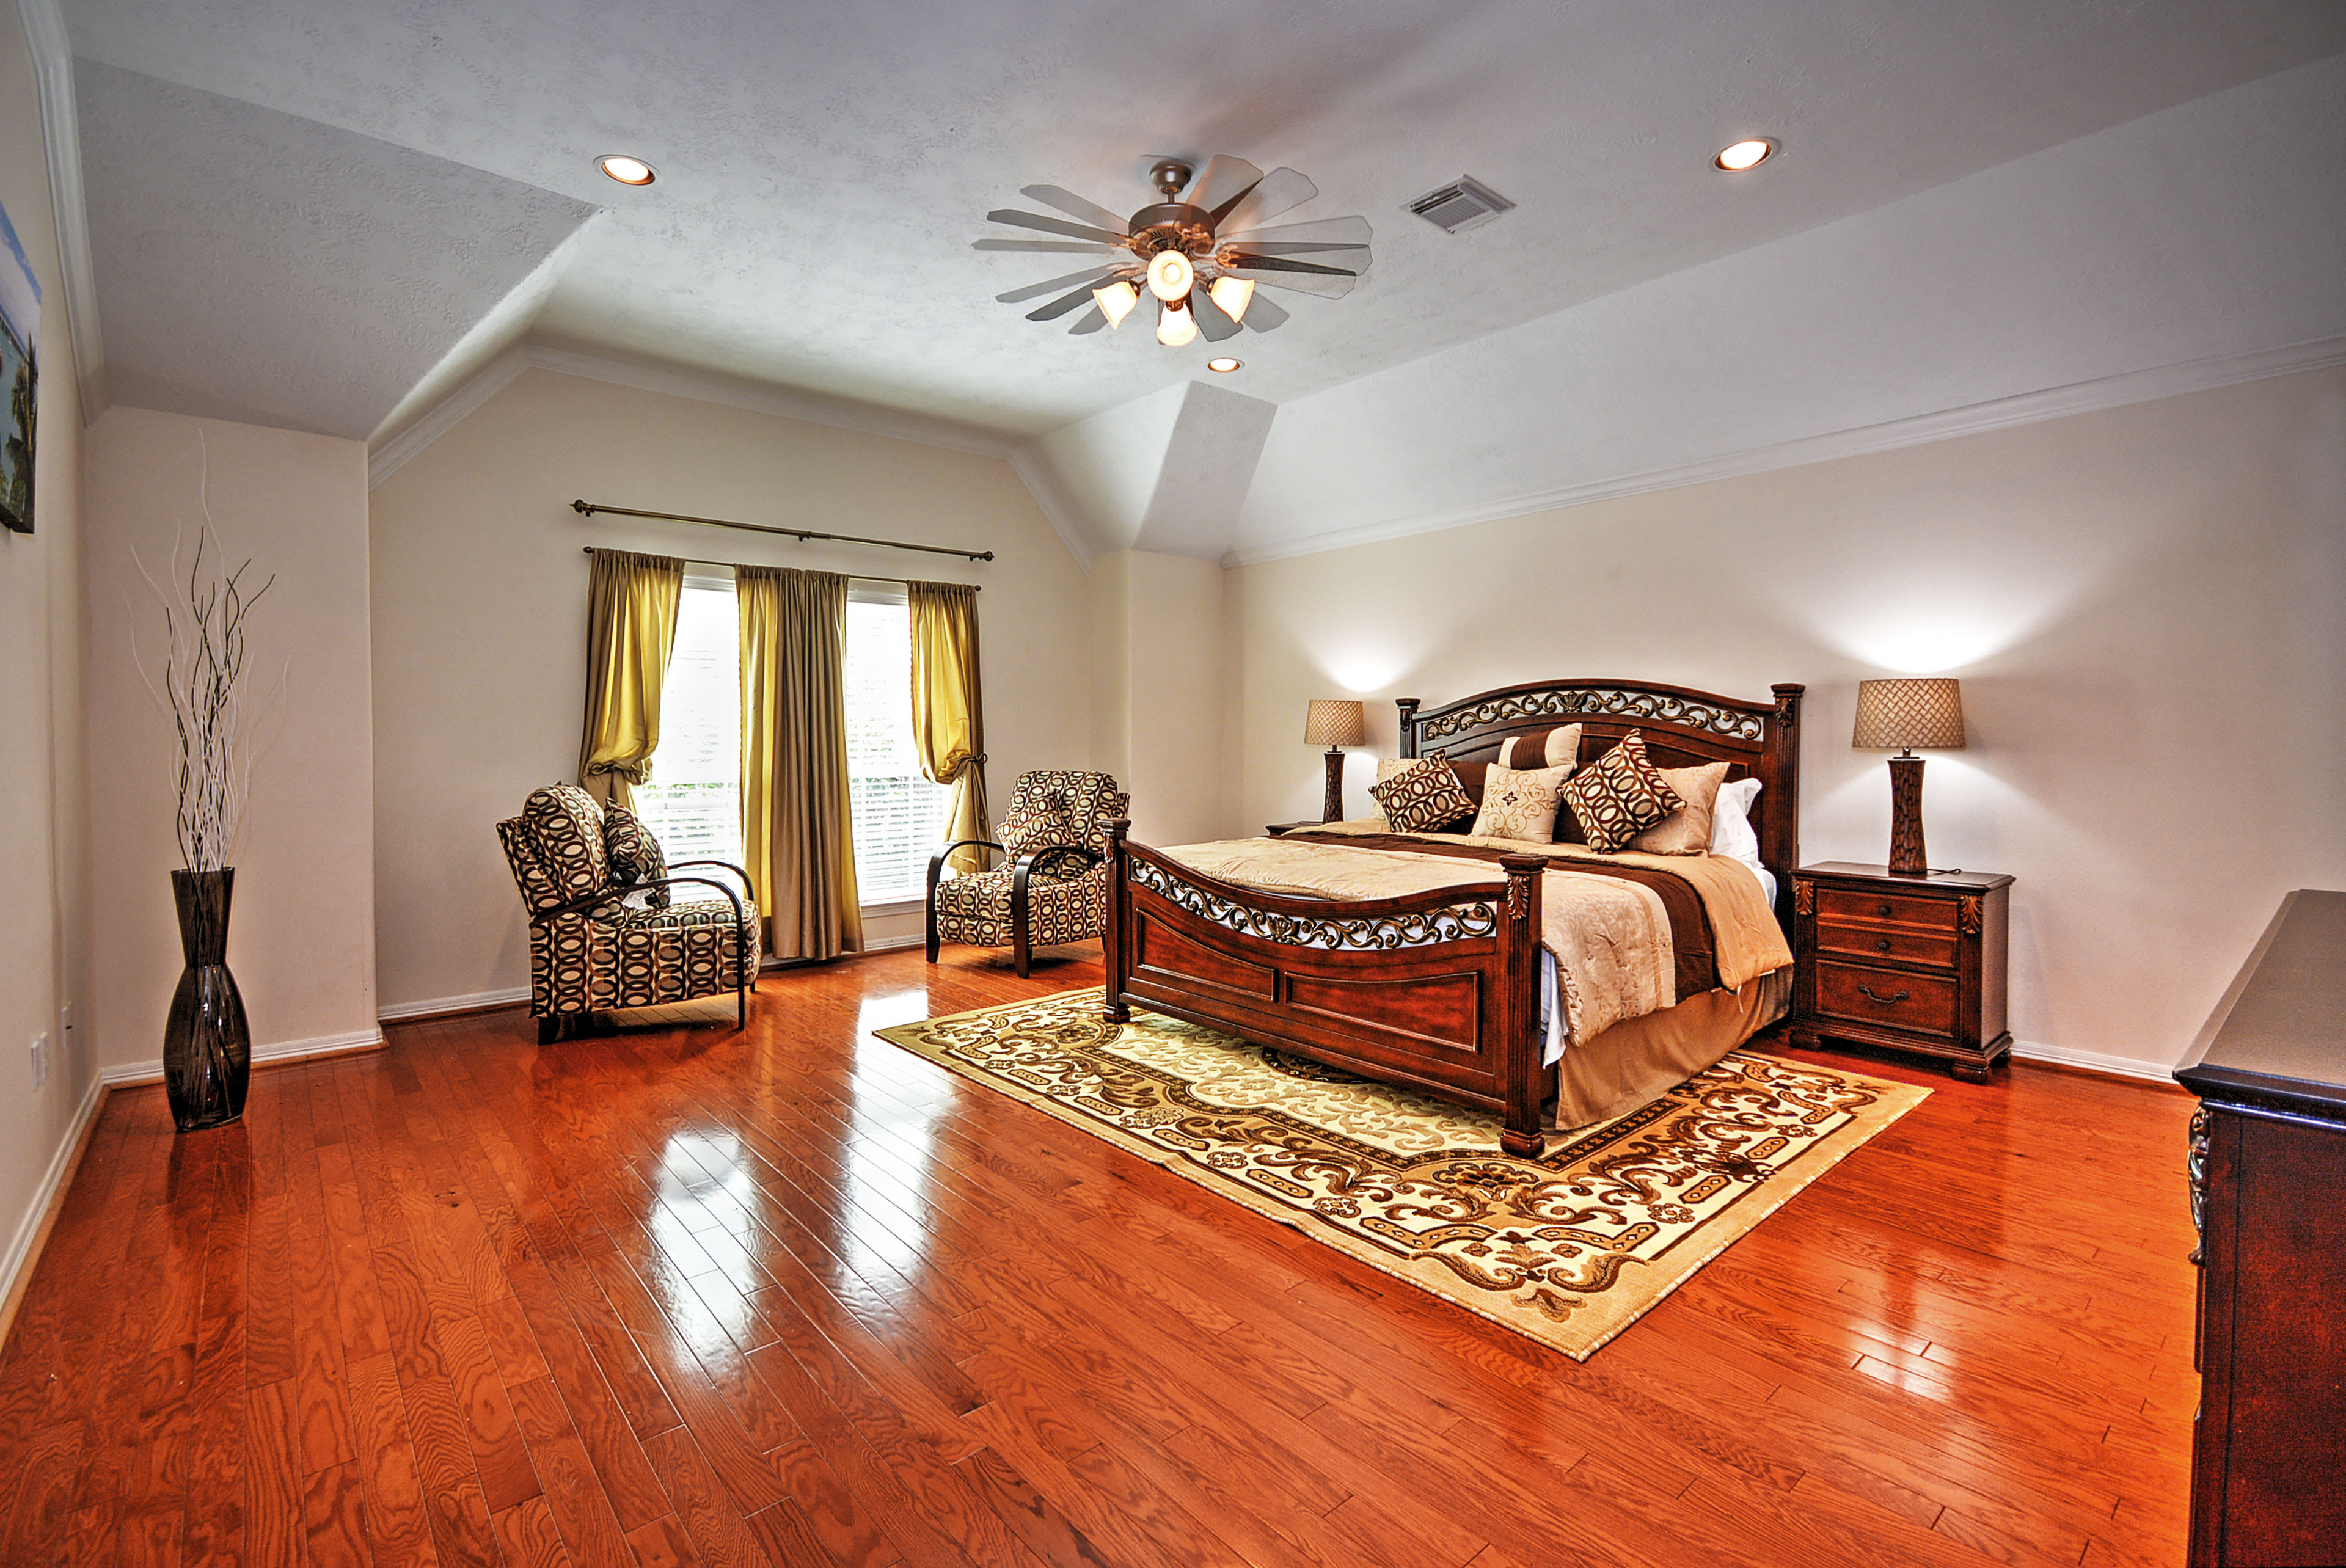 After an eventful day, look forward to retreating to the master bedroom.